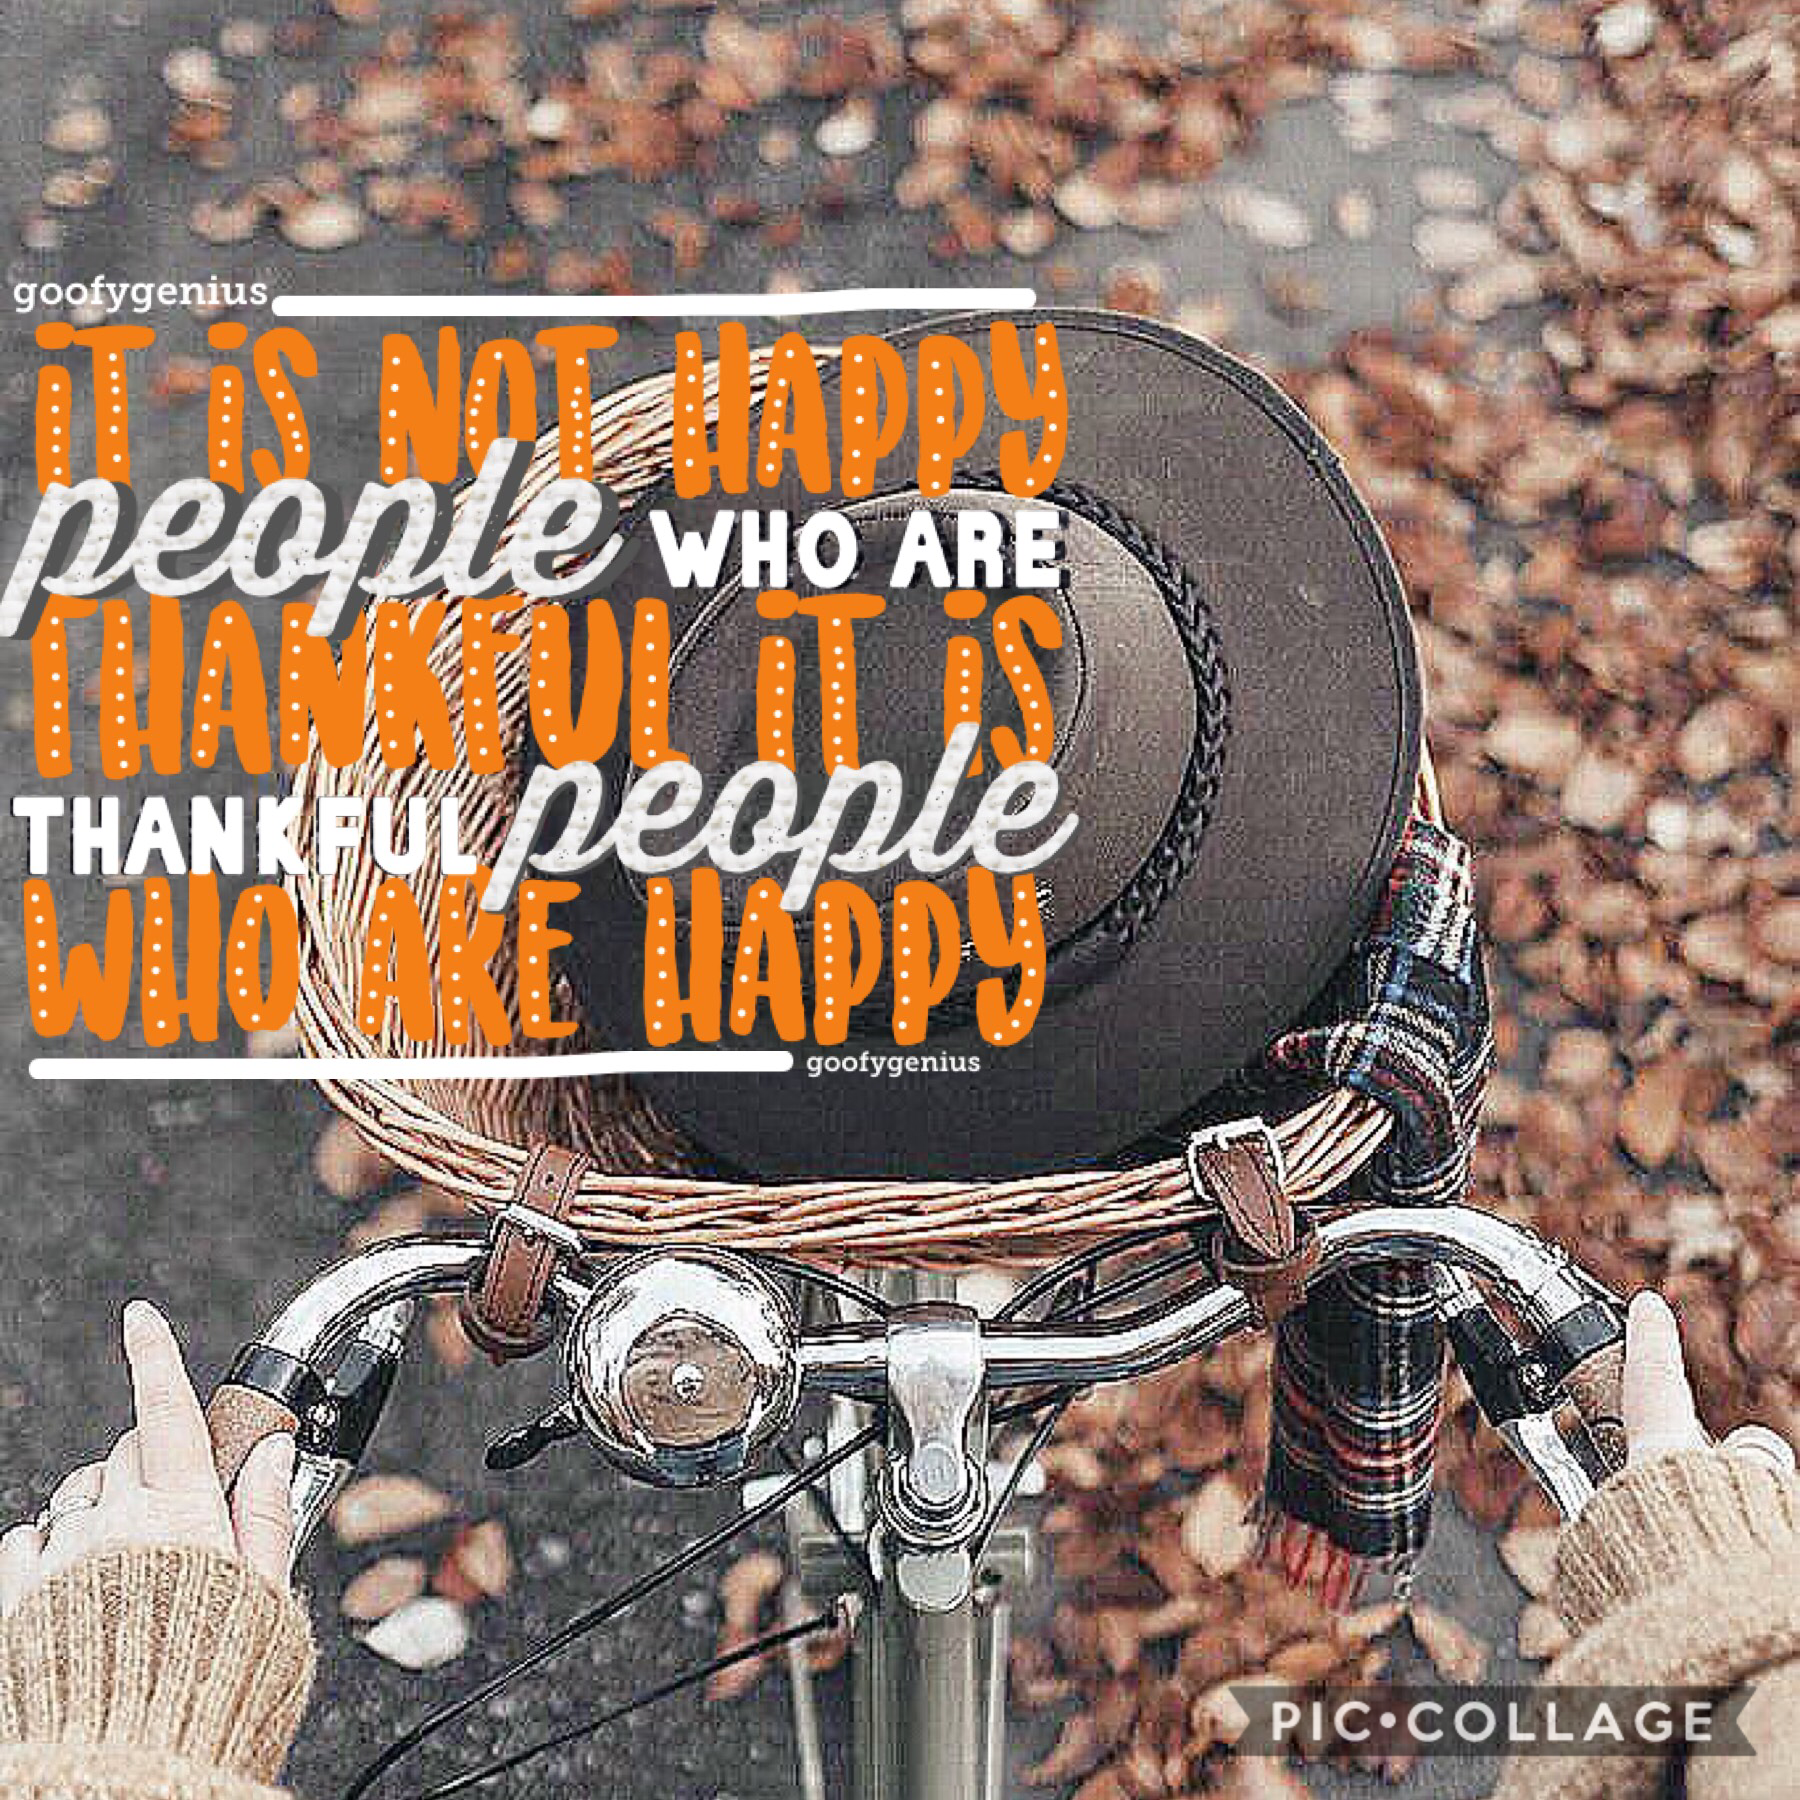 🦃Tap Here🦃 Happy Thanksgiving everyone! I also want to thank you guys for the feature! Whoa. What are you guys thankful? Please rate 1-10. QOTD: Gold, Silver, or rose gold? AOTD: Silver